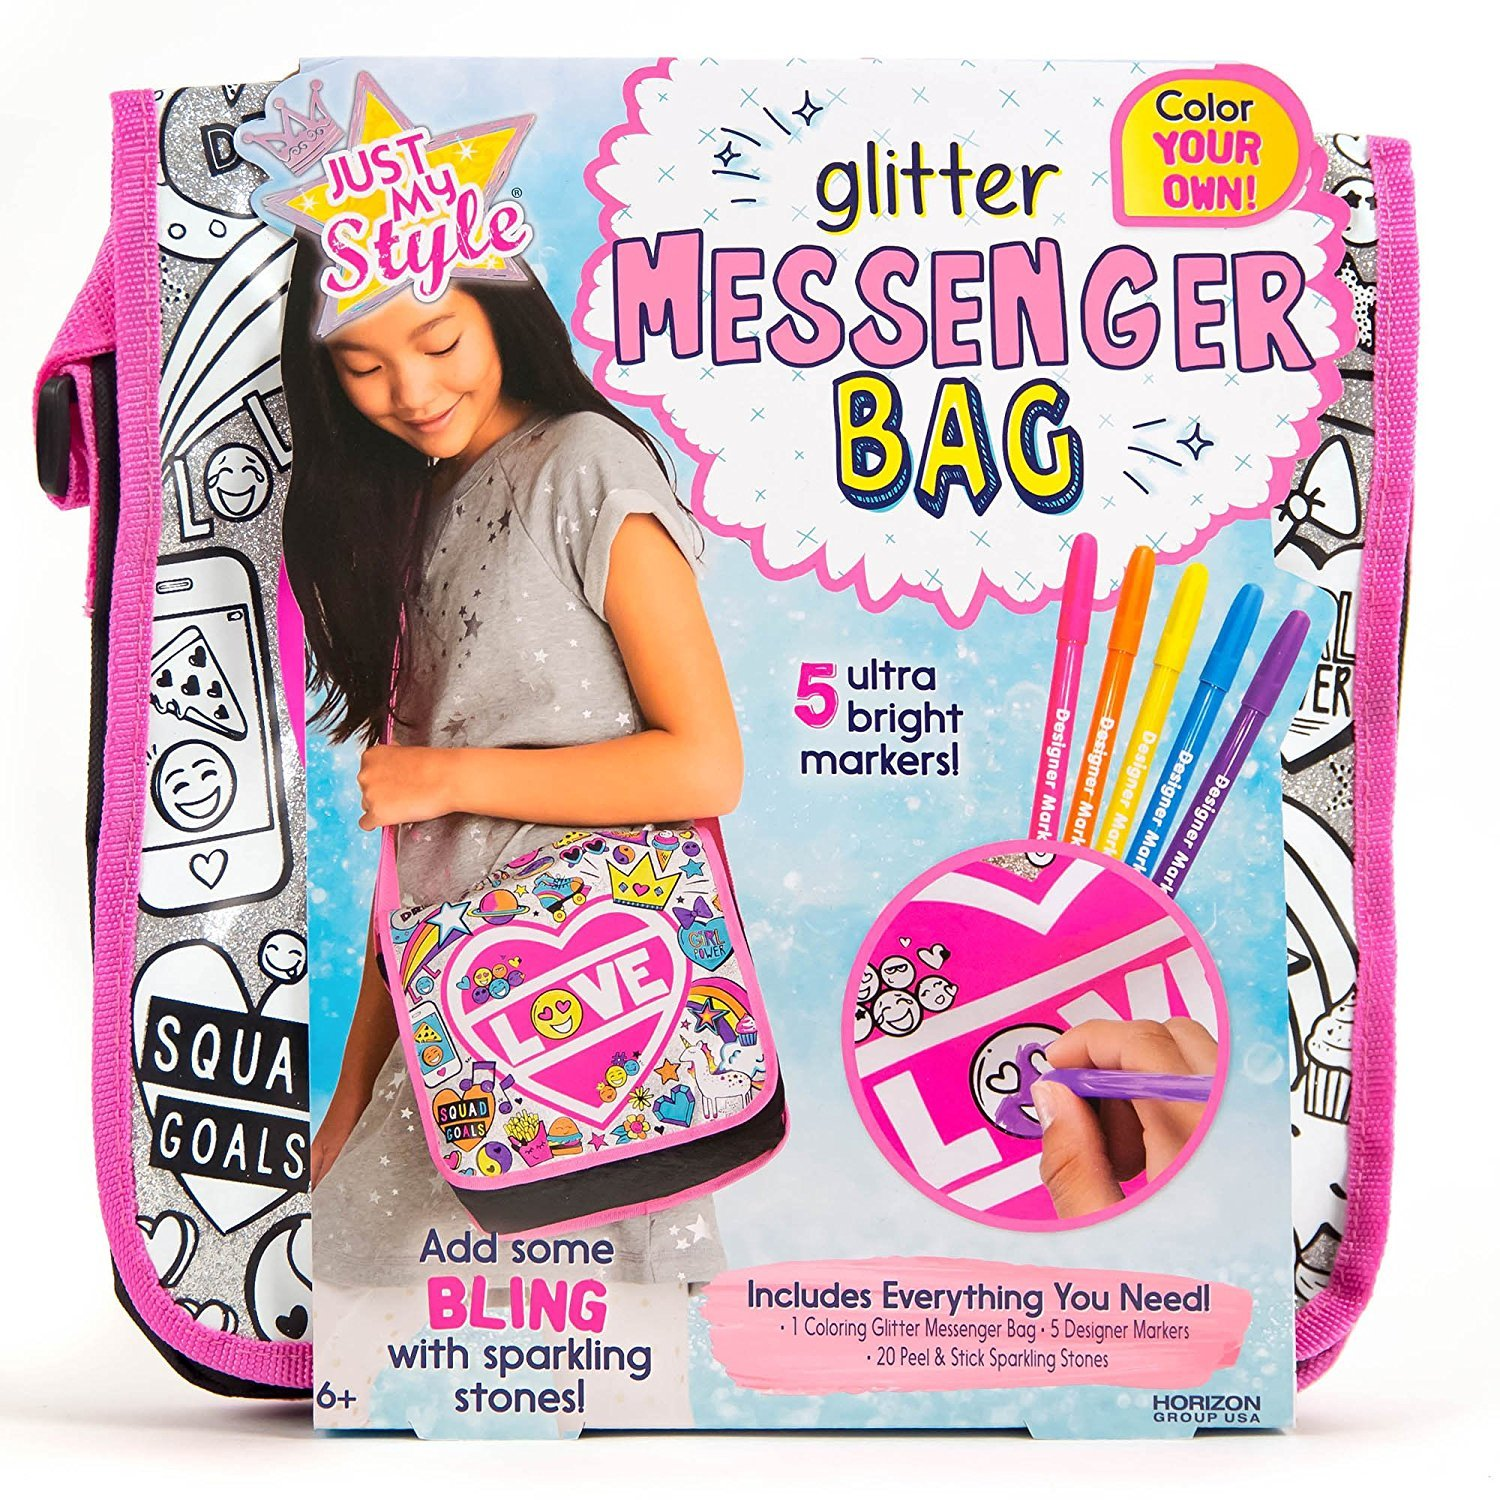 Just My Style Color Your Own Glitter Messenger Bag by Horizon Group USA, Girl Power Purse, Sparkling Gem Stones & 5 Bright Markers Included, Multicolored